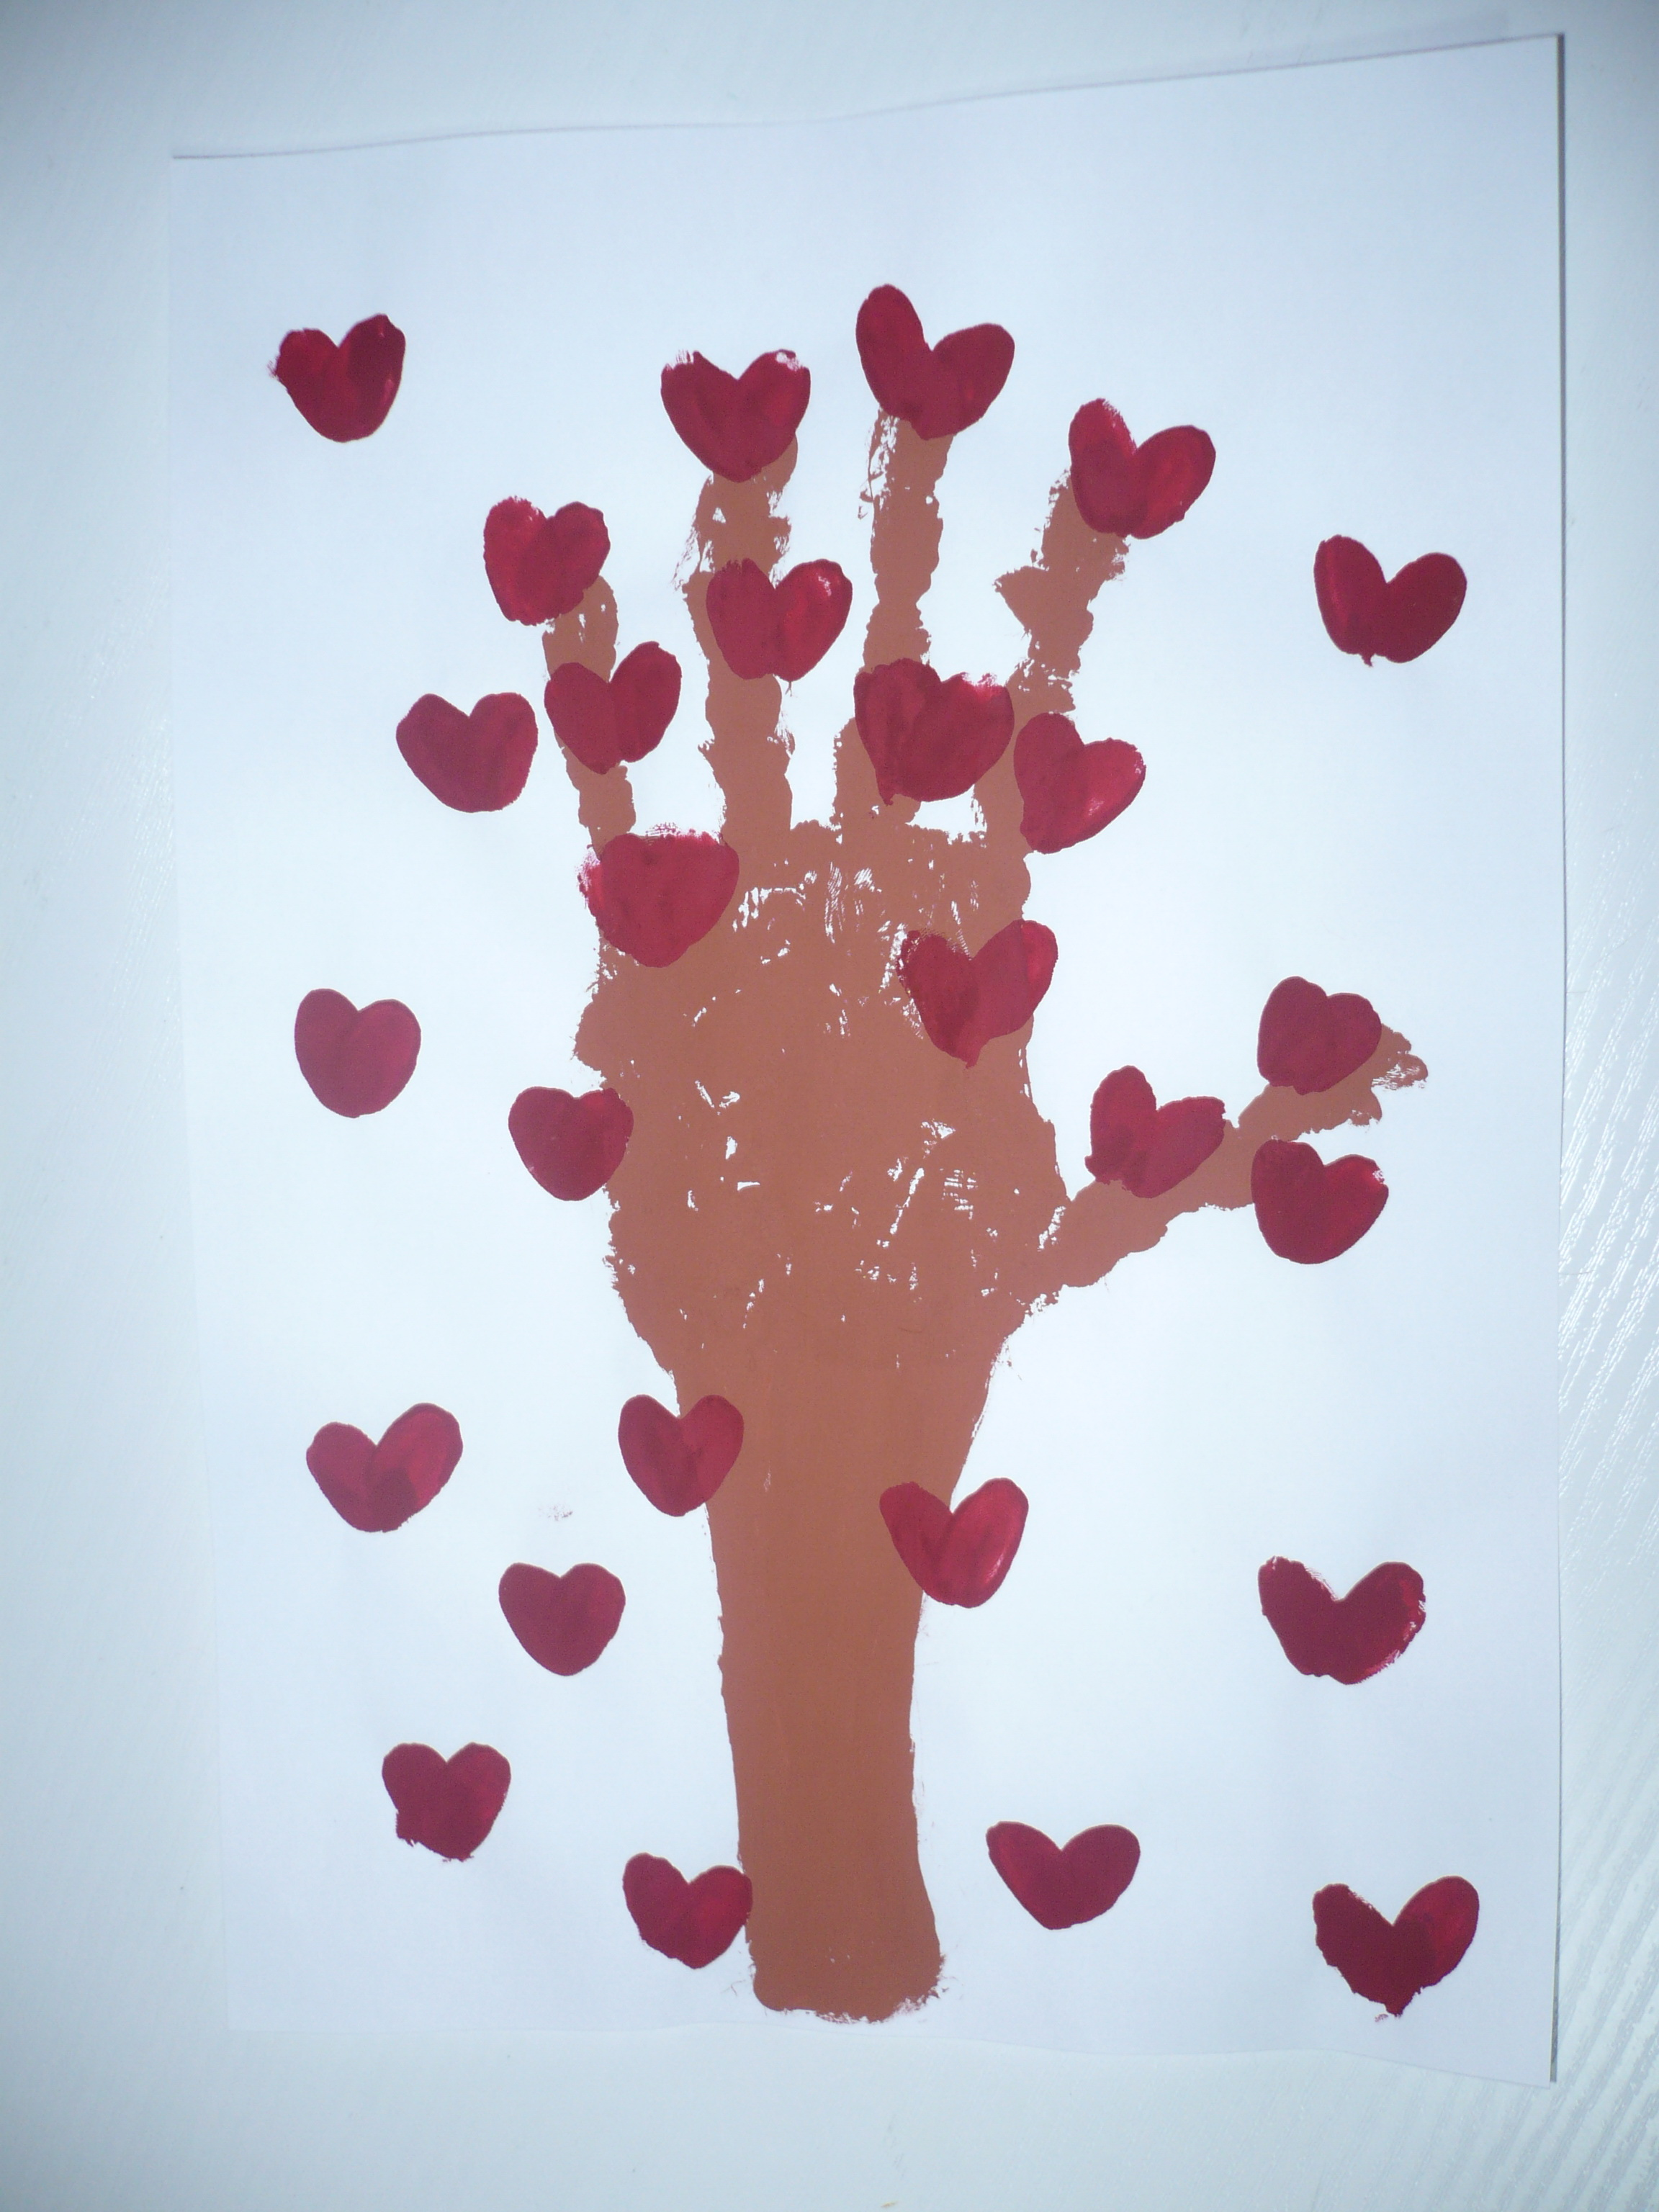 Handprint Tree Of Hearts Fun Family Crafts